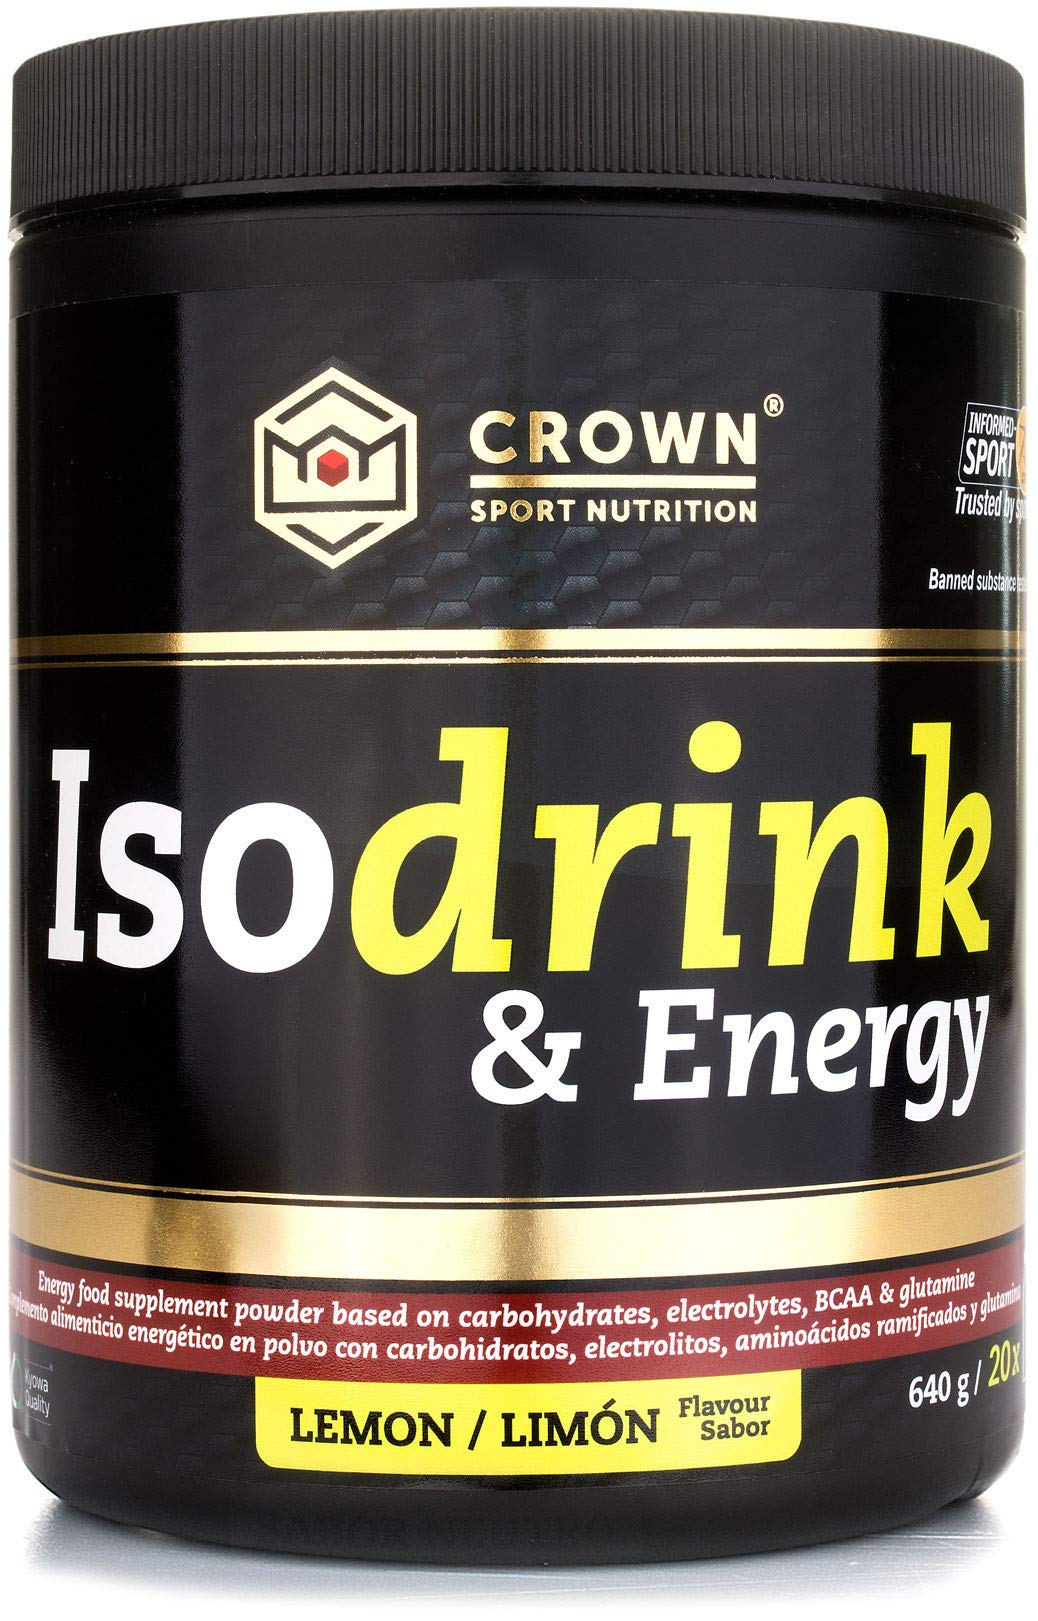 Crown Sport Nutrition Isotonic Drink, Bebida isotónica con carbohidratos, BCAAs, glutamina y electrolitos